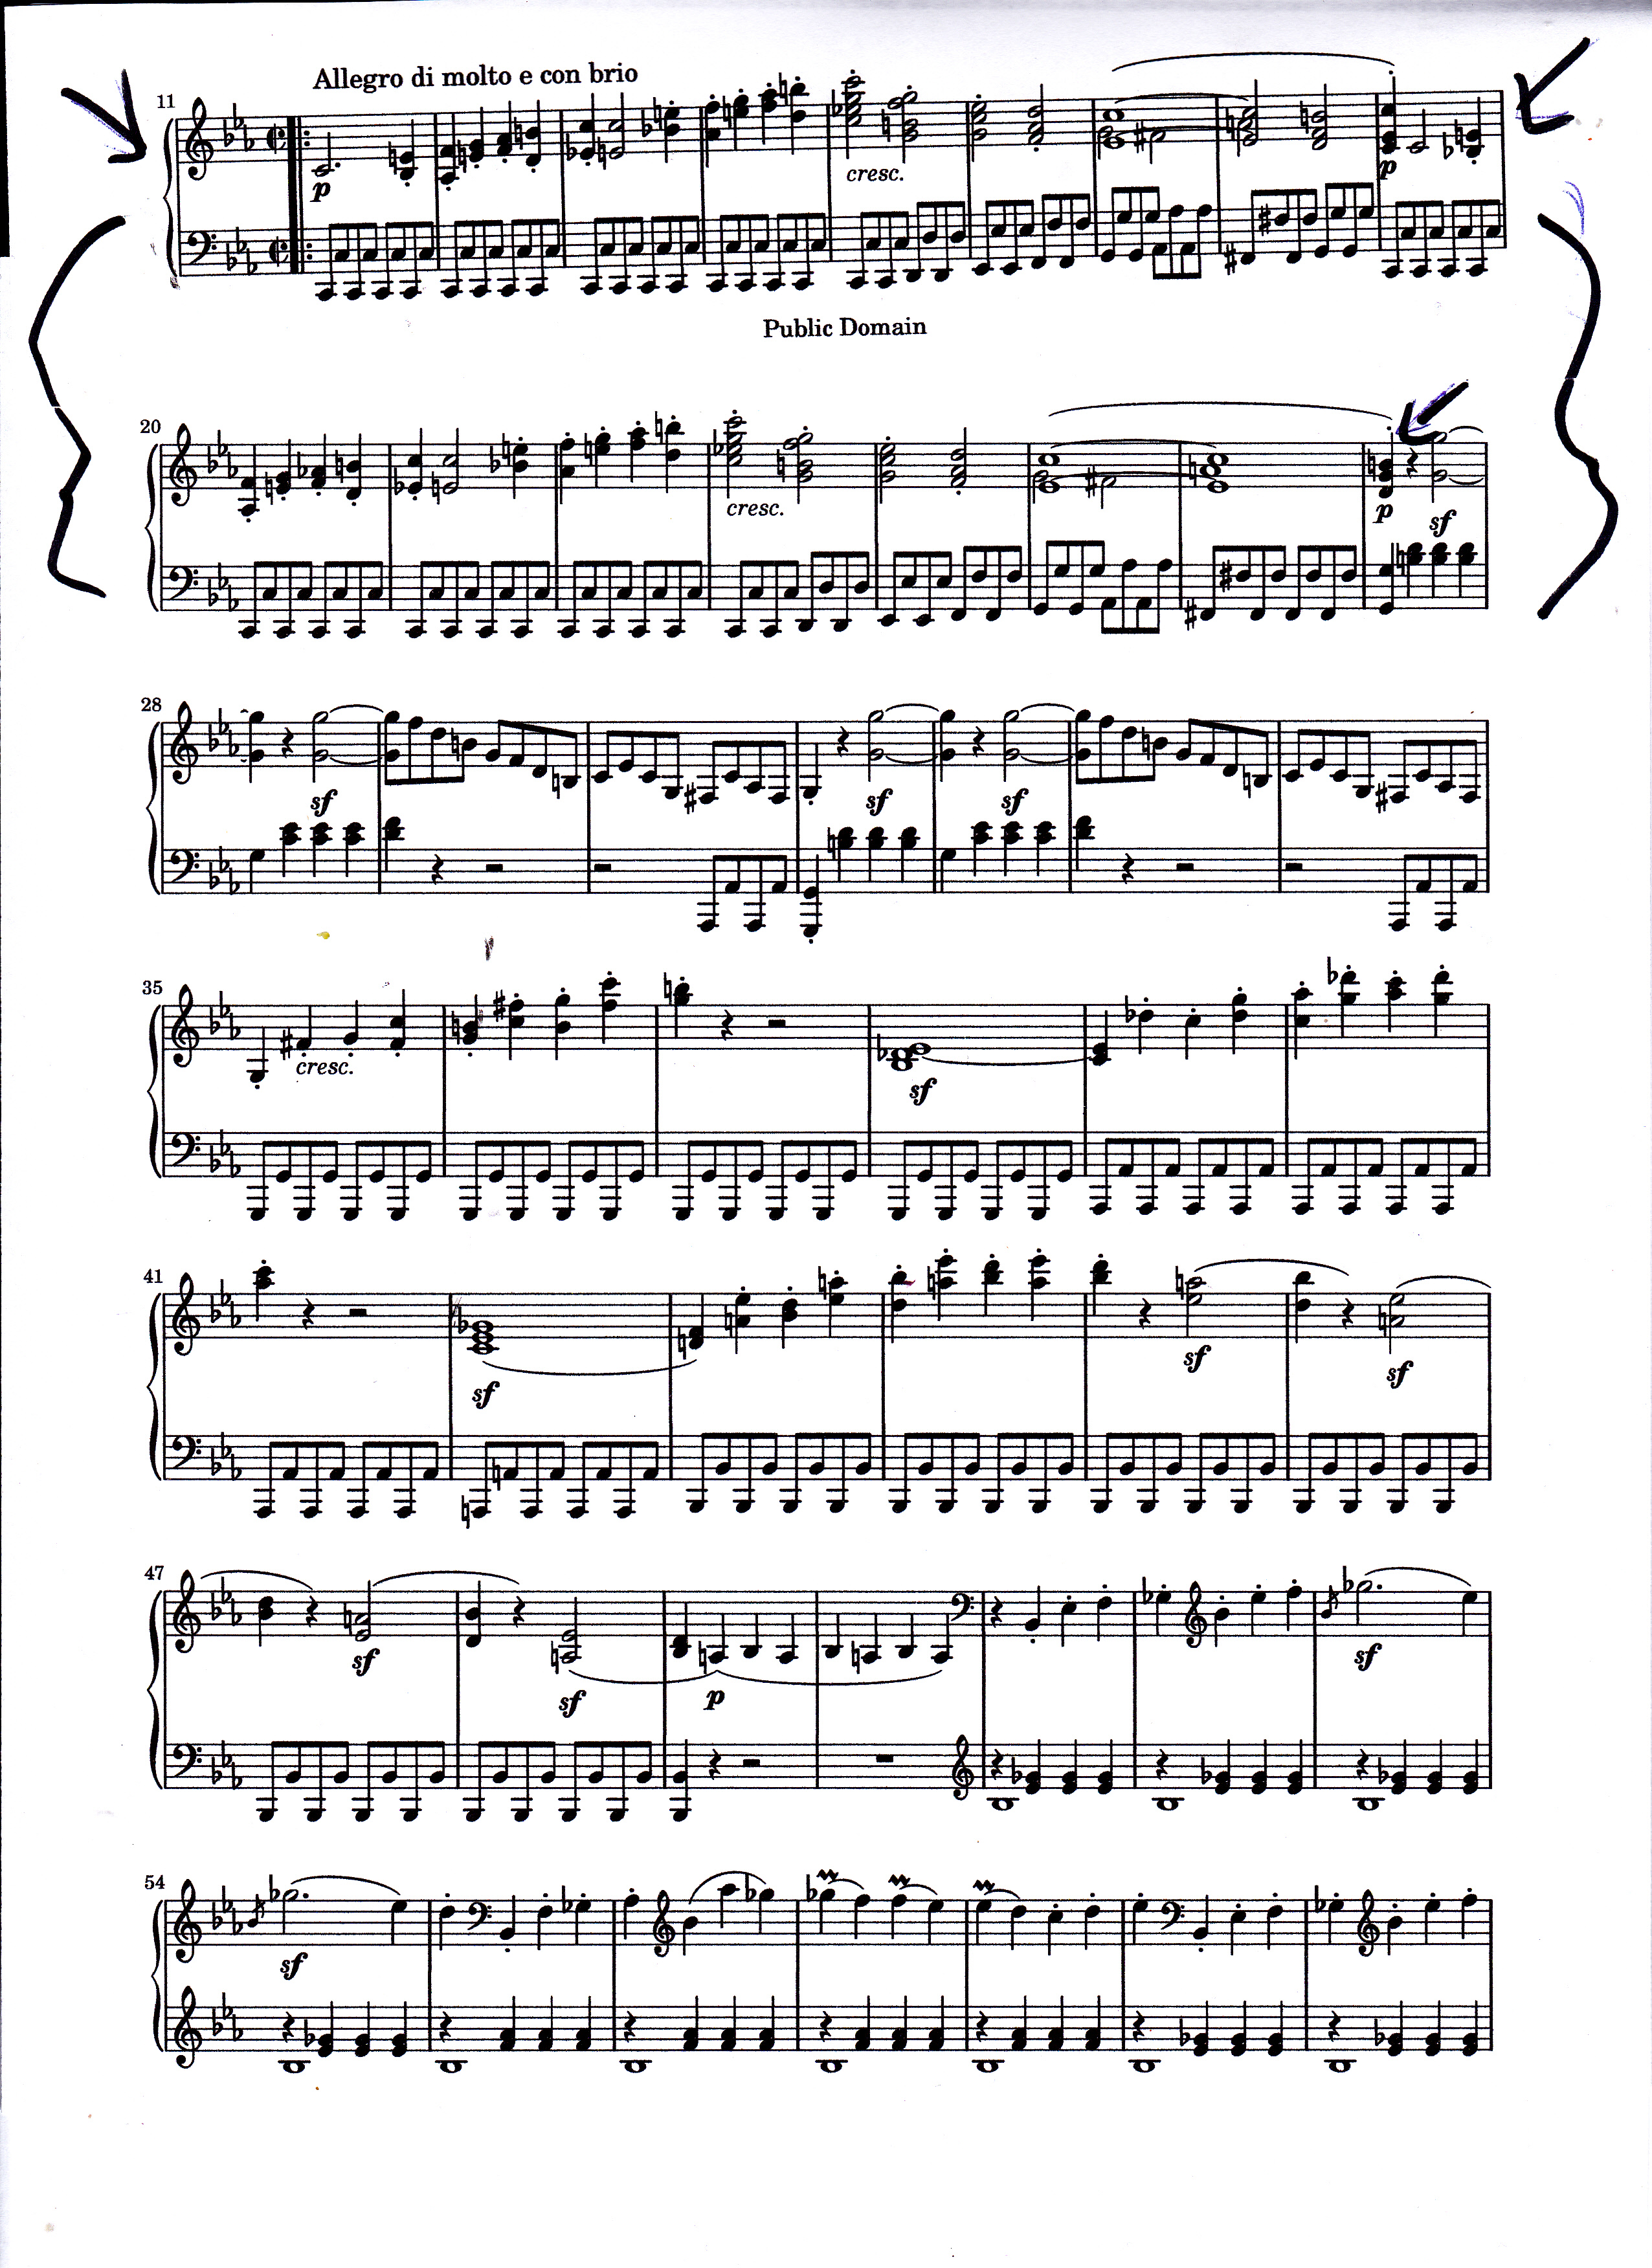 beethoven sonata analysis op 31 no 1 Classical beethoven adagio from sonata op31 no1 alto saxophone version alto saxophone classical alto saxophone classical alto saxophone subscription sheet music beethoven - adagio from sonata op31 no1 by clicking the buy now button above, you will first be asked to create an 8notes account if .